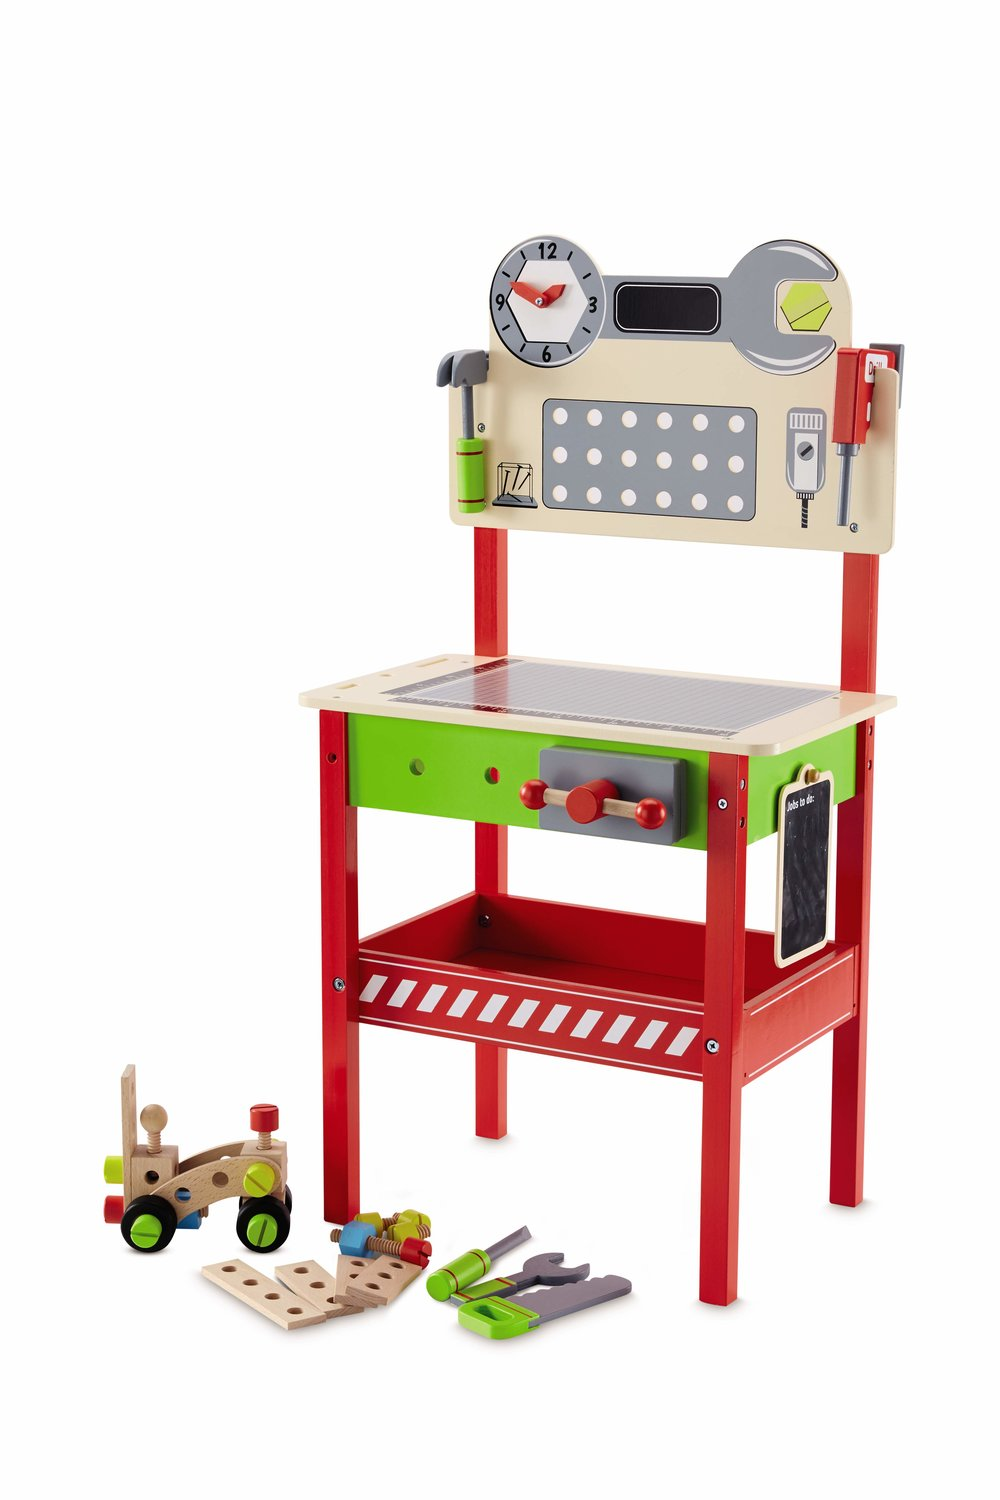 Wooden Work Bench and Tools £34.99